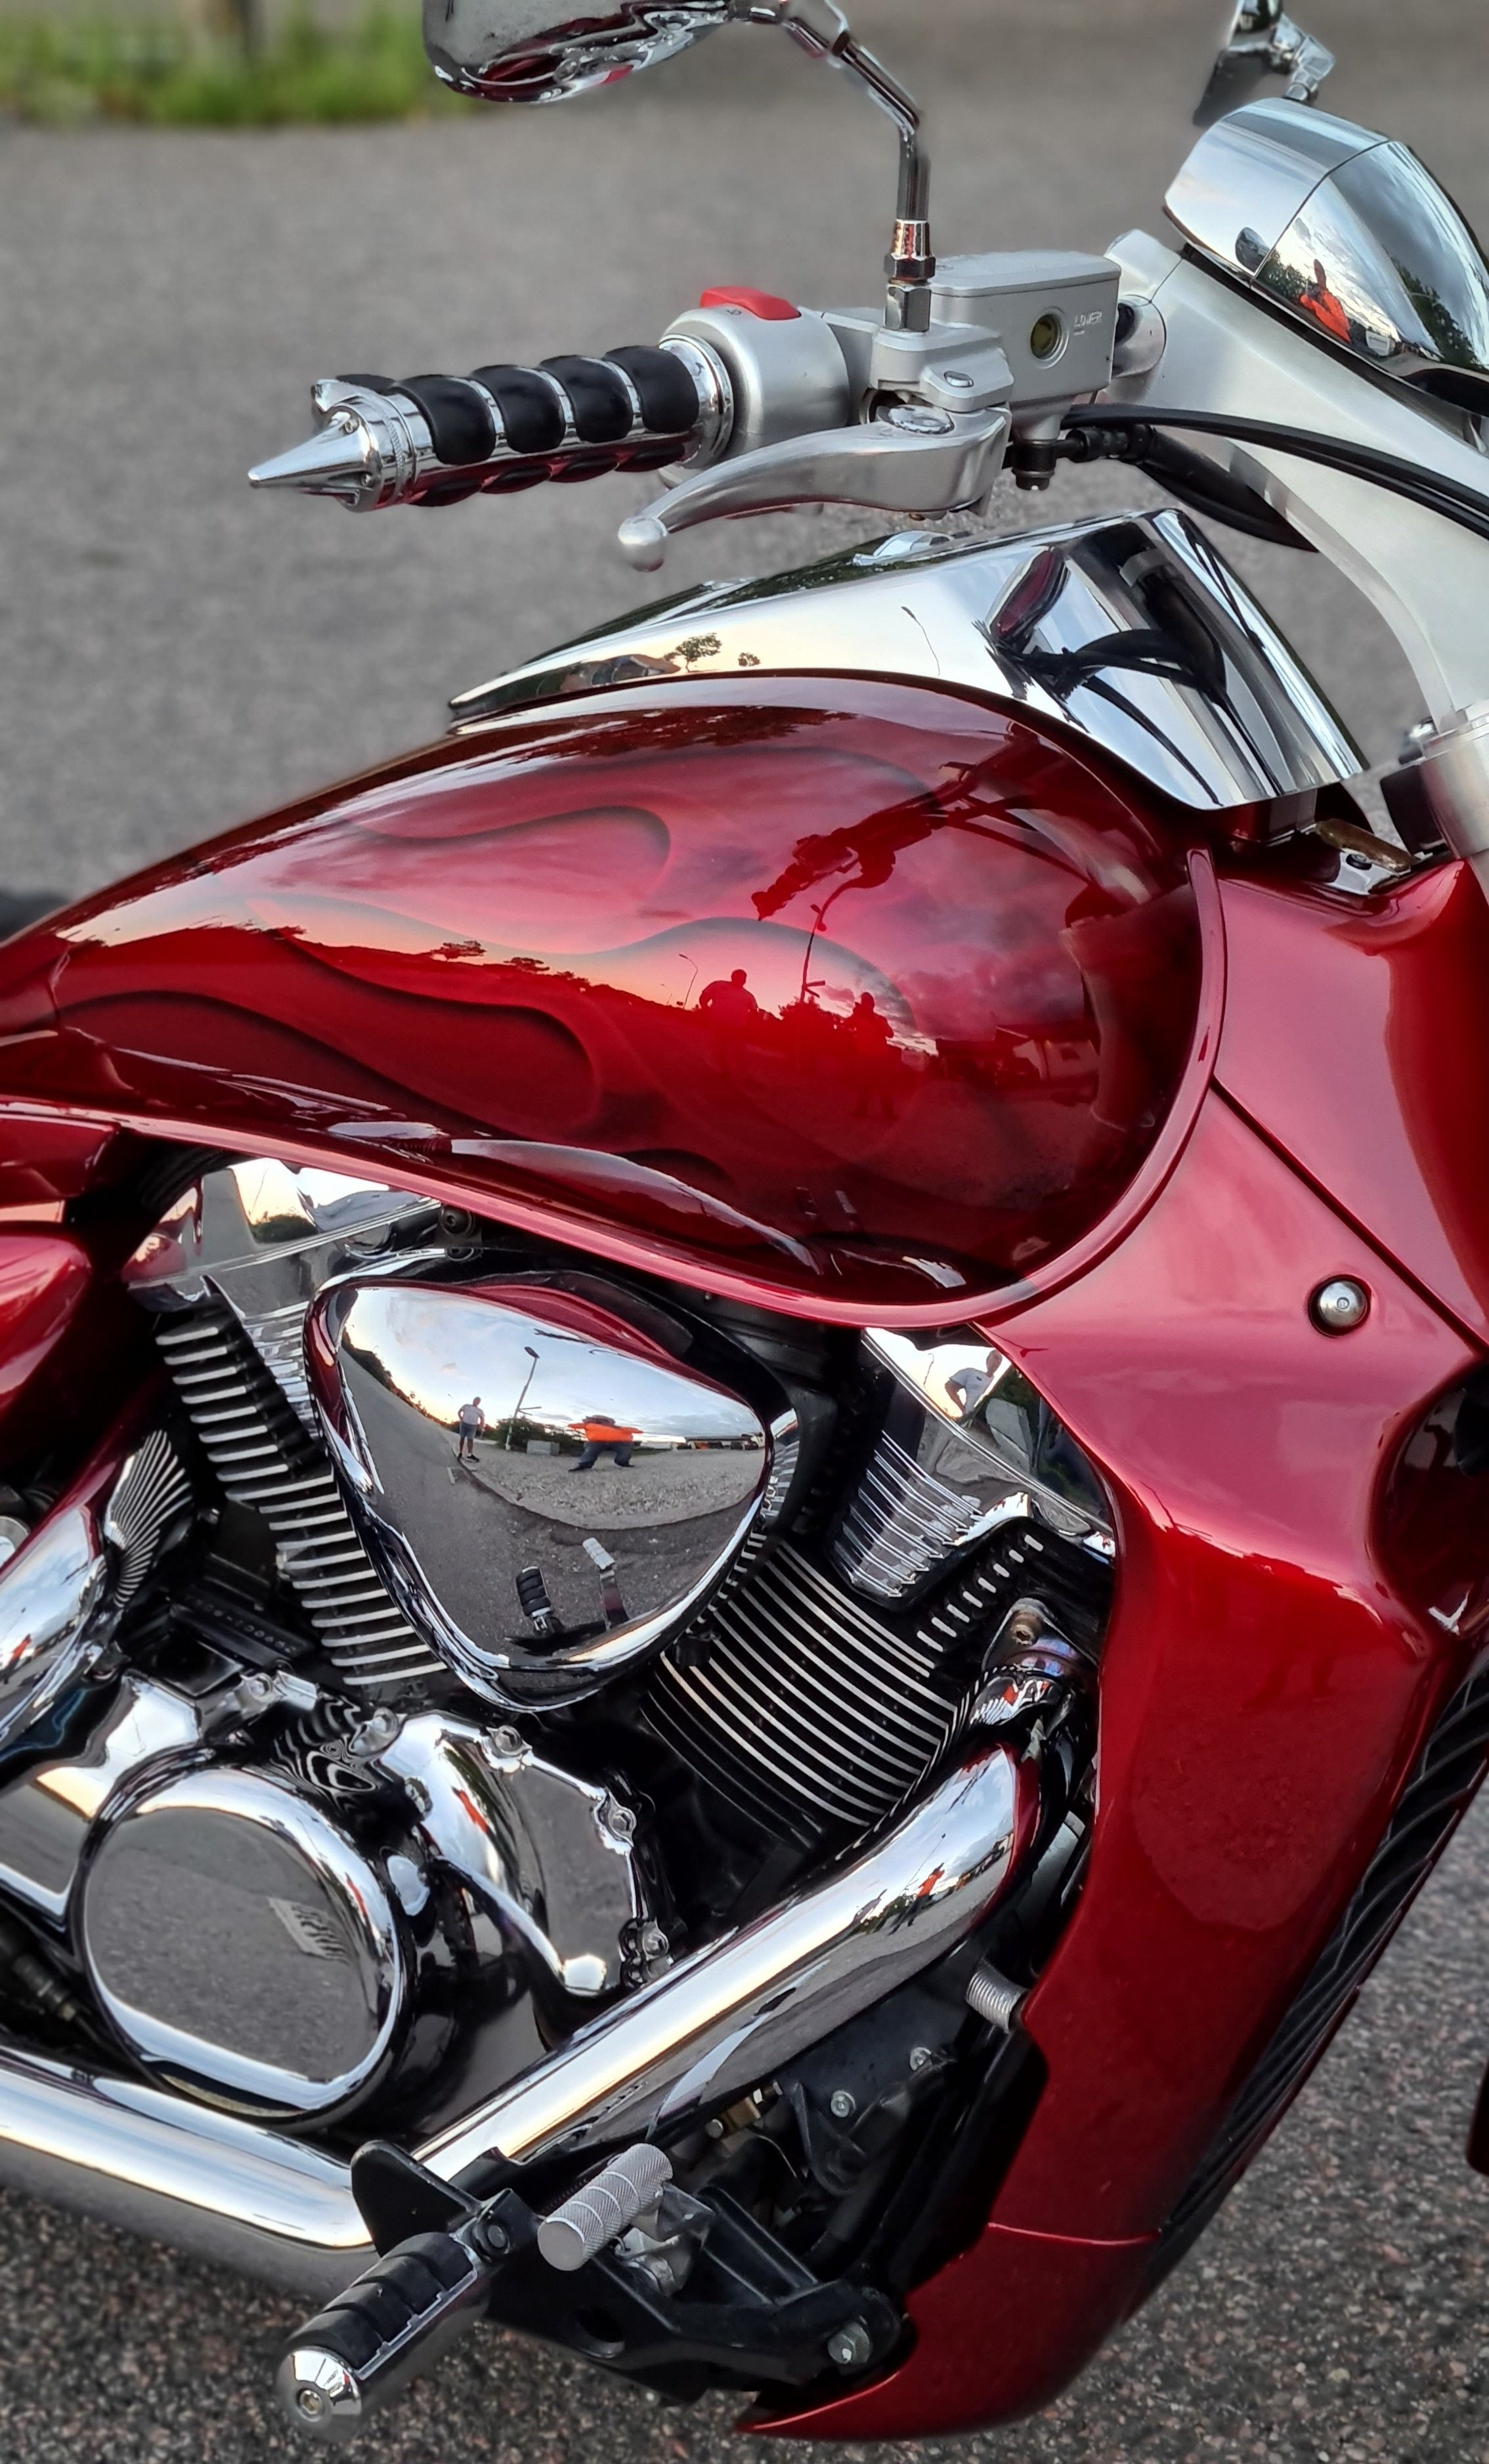 Suzuki Intruder m1800r red candy ghost classic flames 7